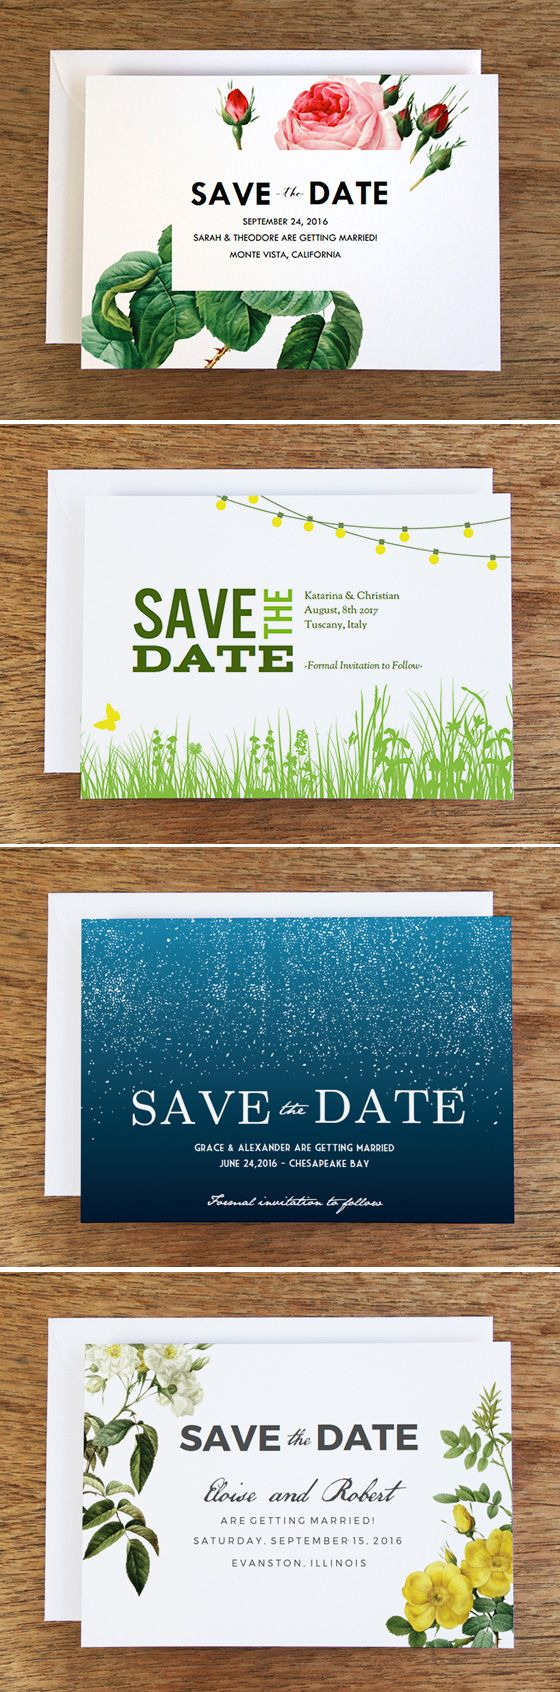 When Do You Send Save The Dates: Save The Date Wording, Save The Date And Free Printable On